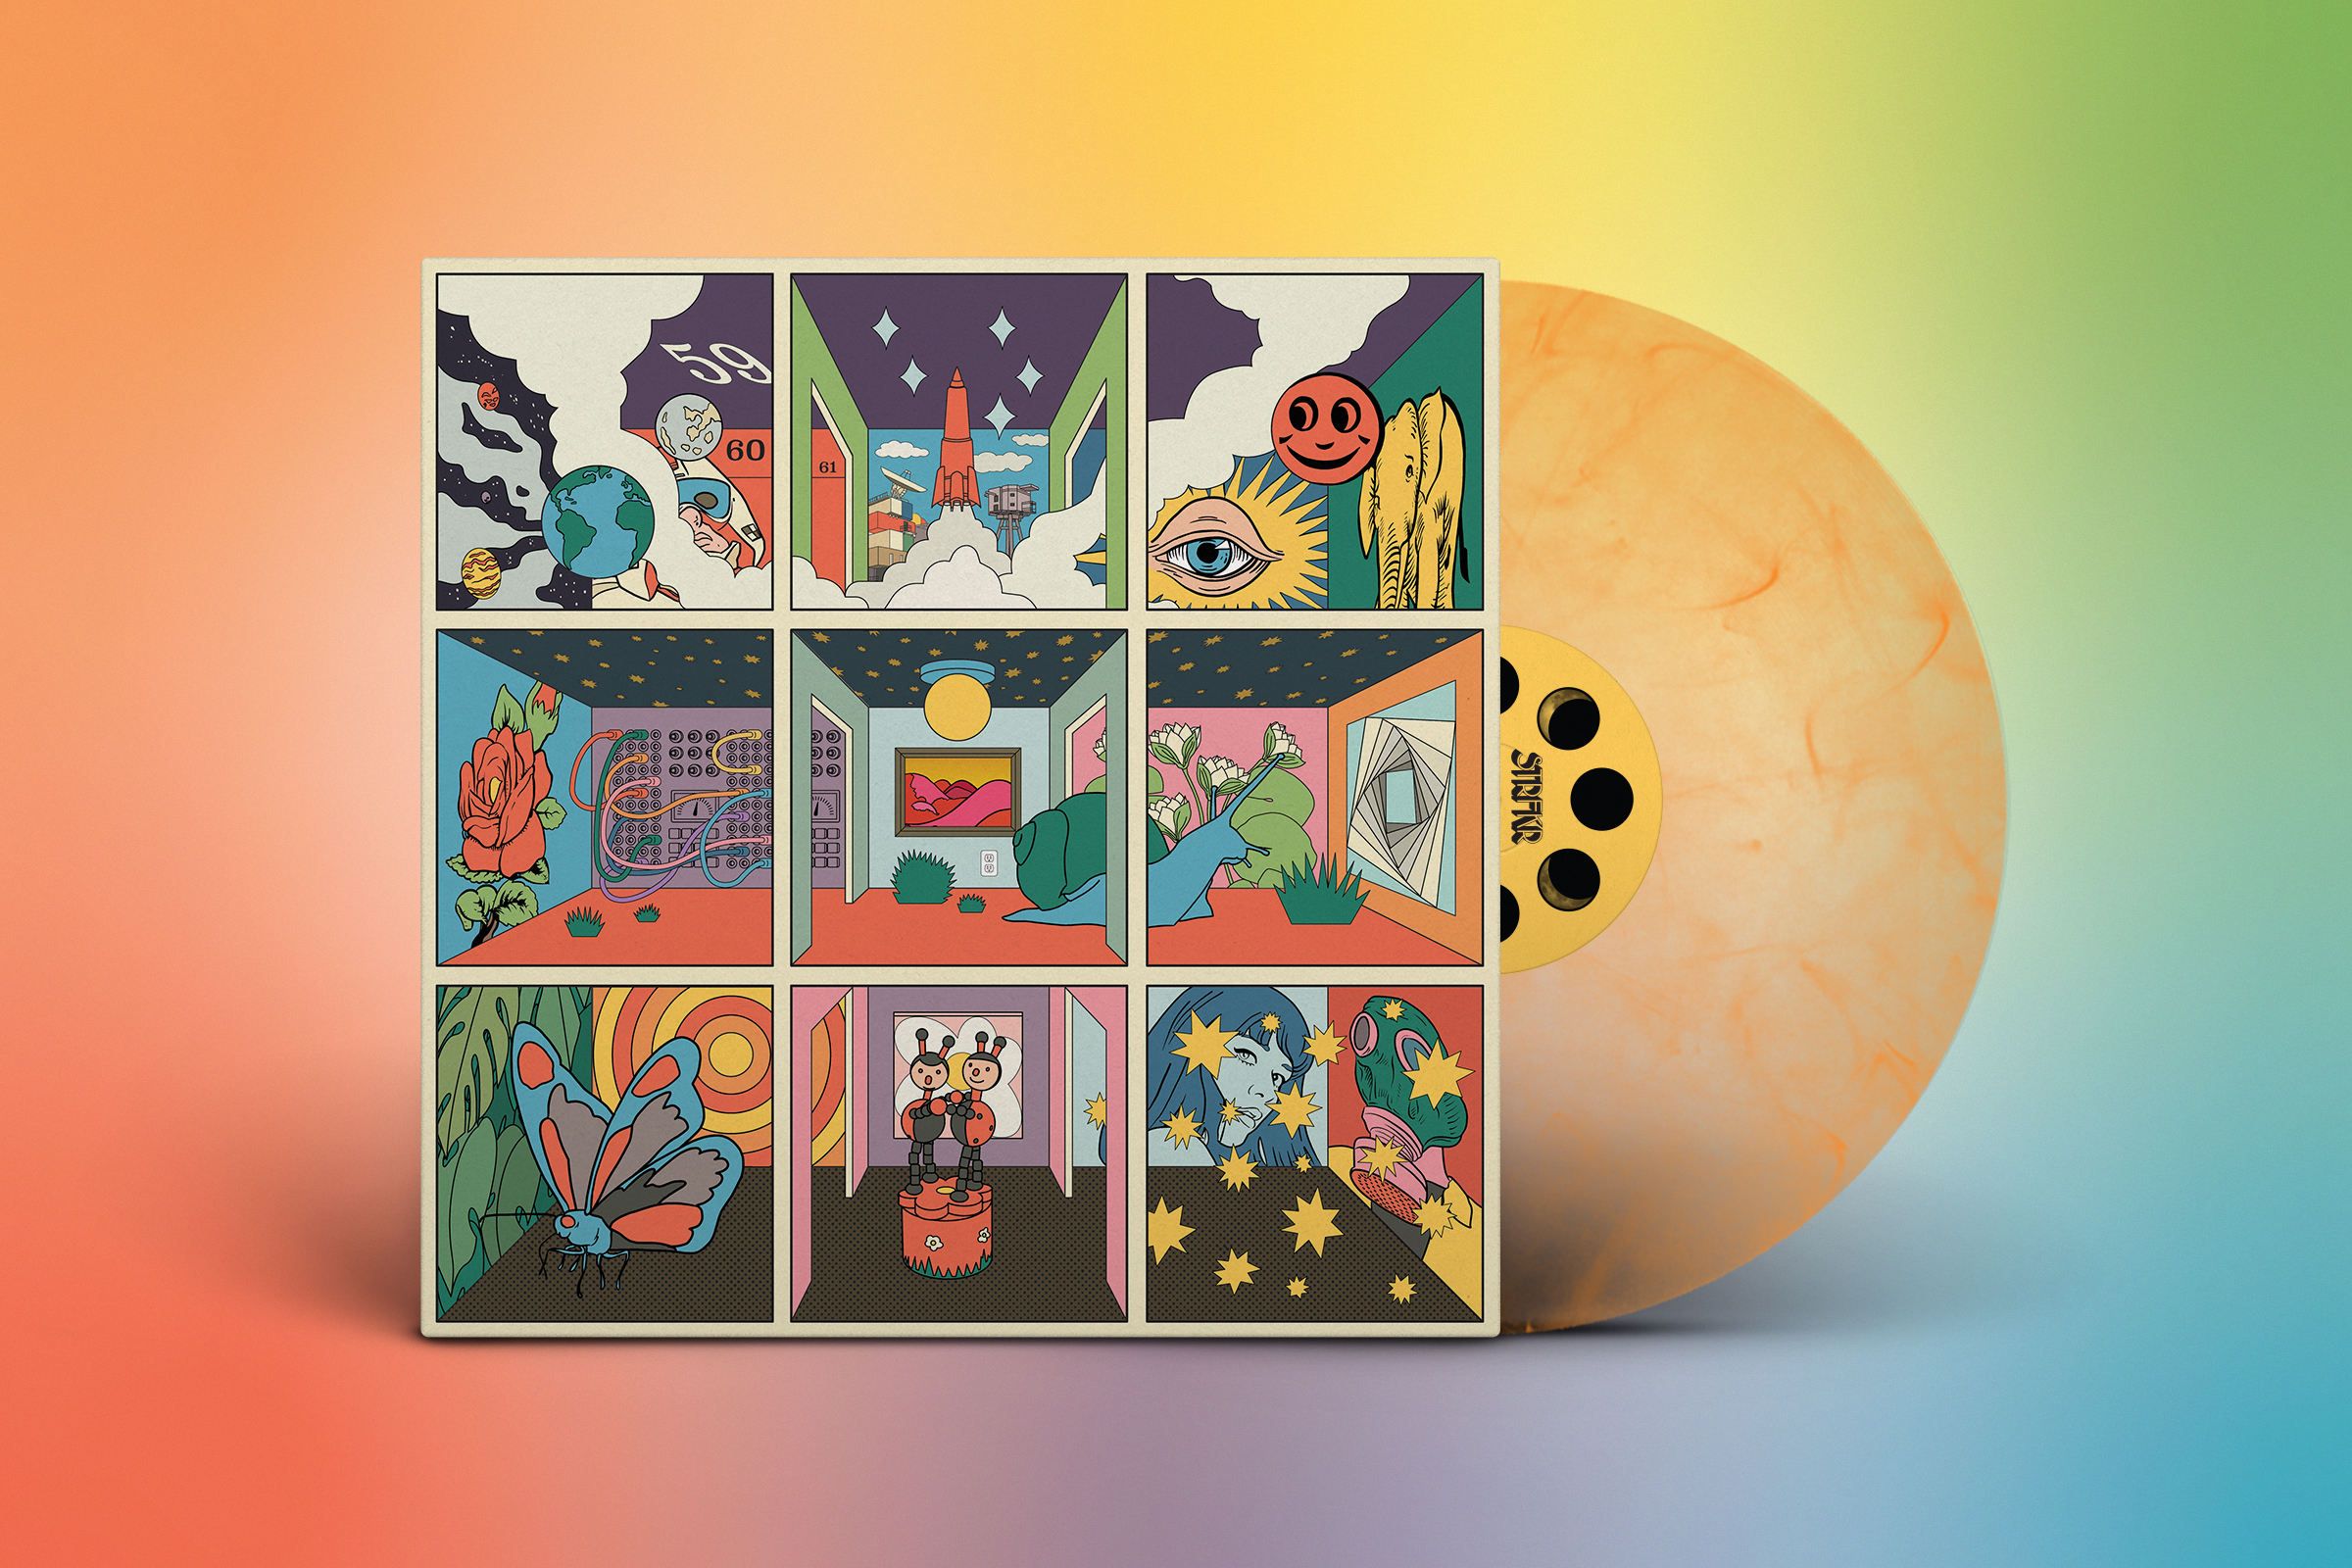 STRFKR surprise release their new album Future Past Life